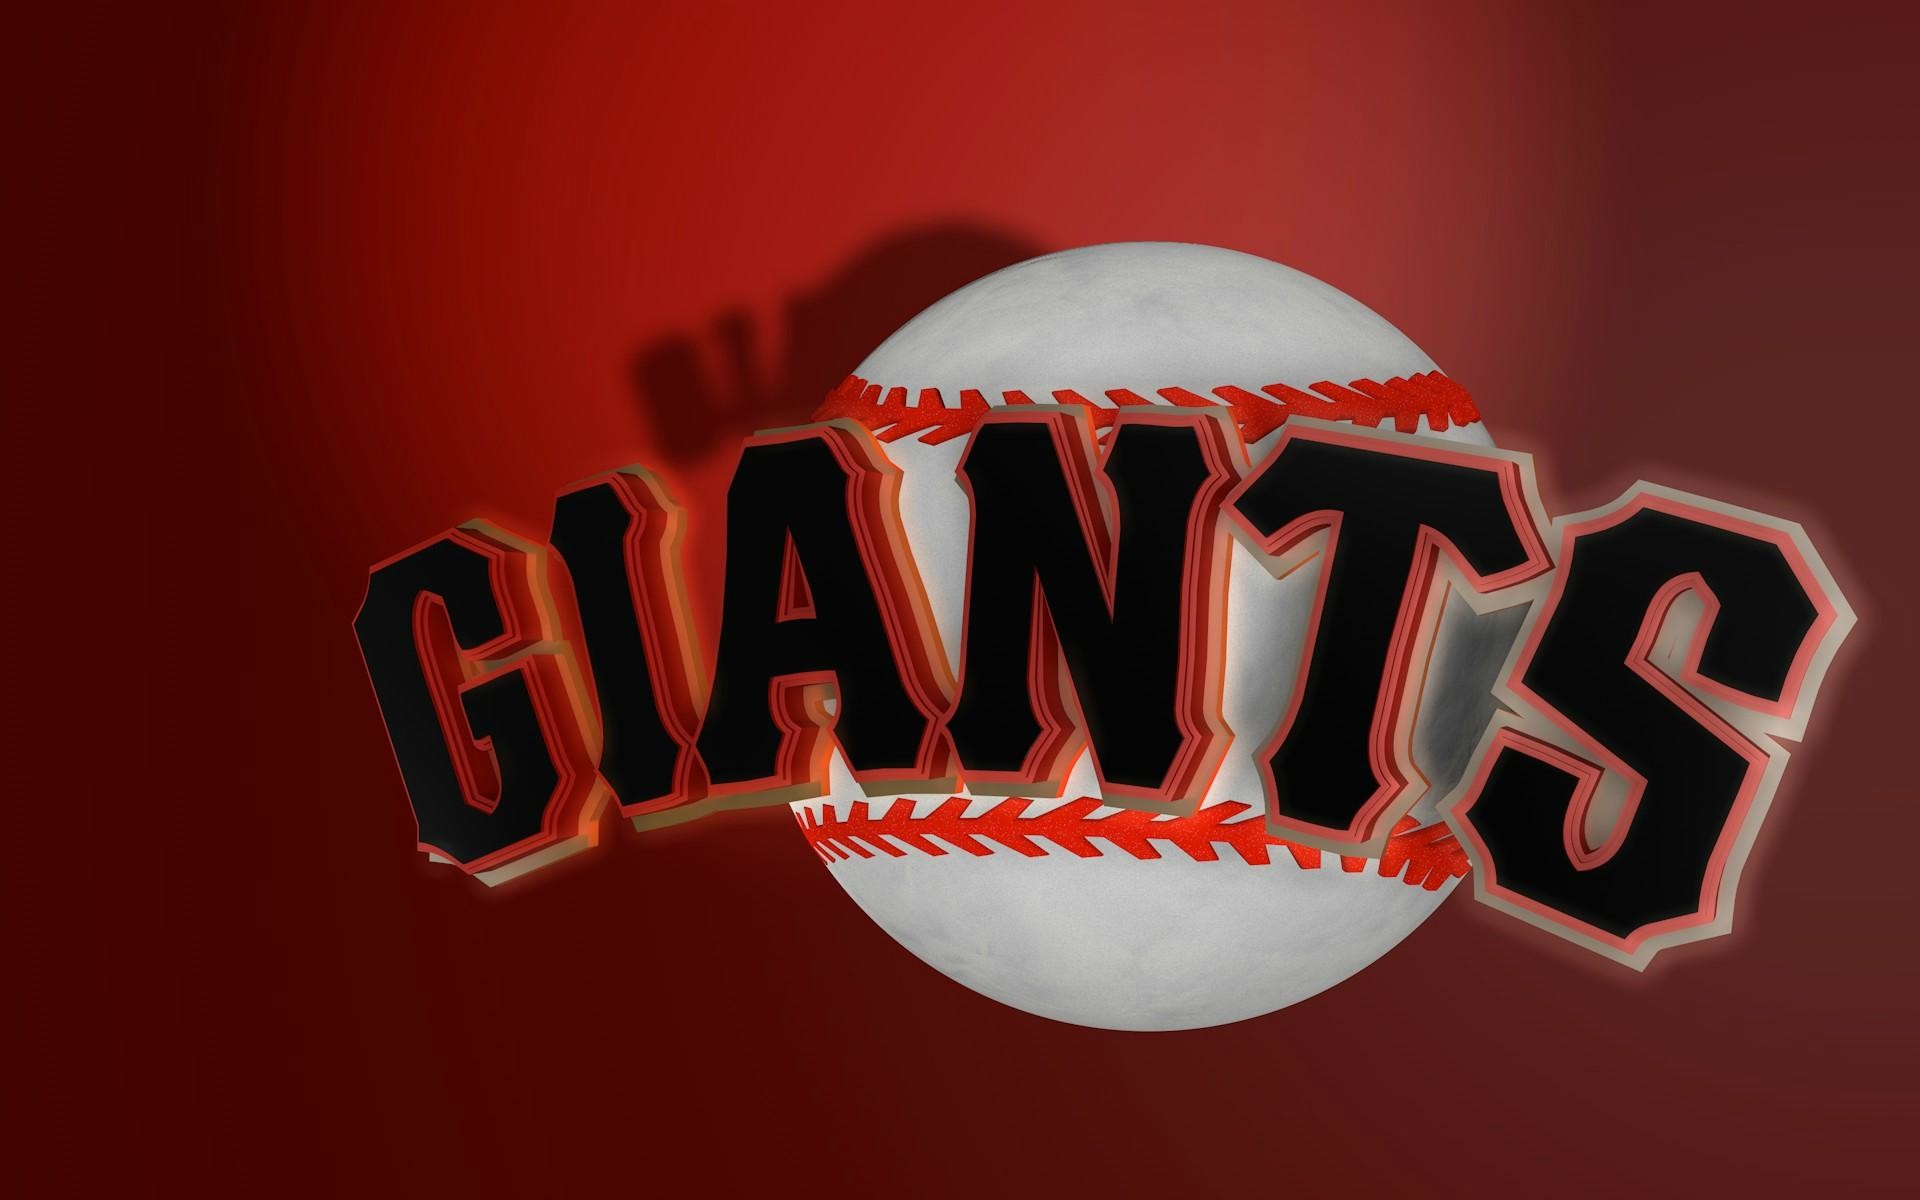 giants world series wallpaper